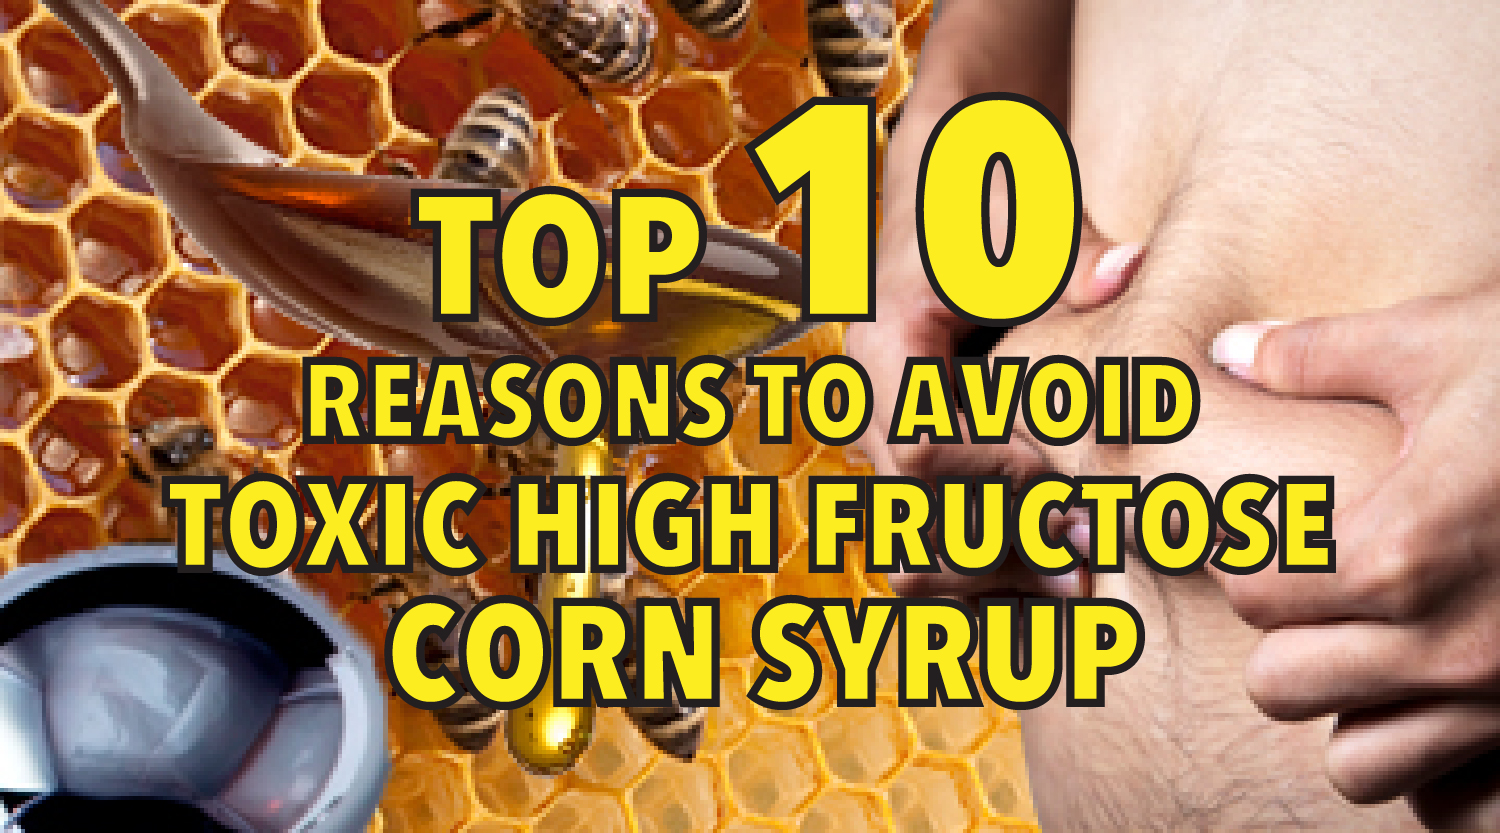 Top 10 reasons to avoid toxic high-fructose corn syrup